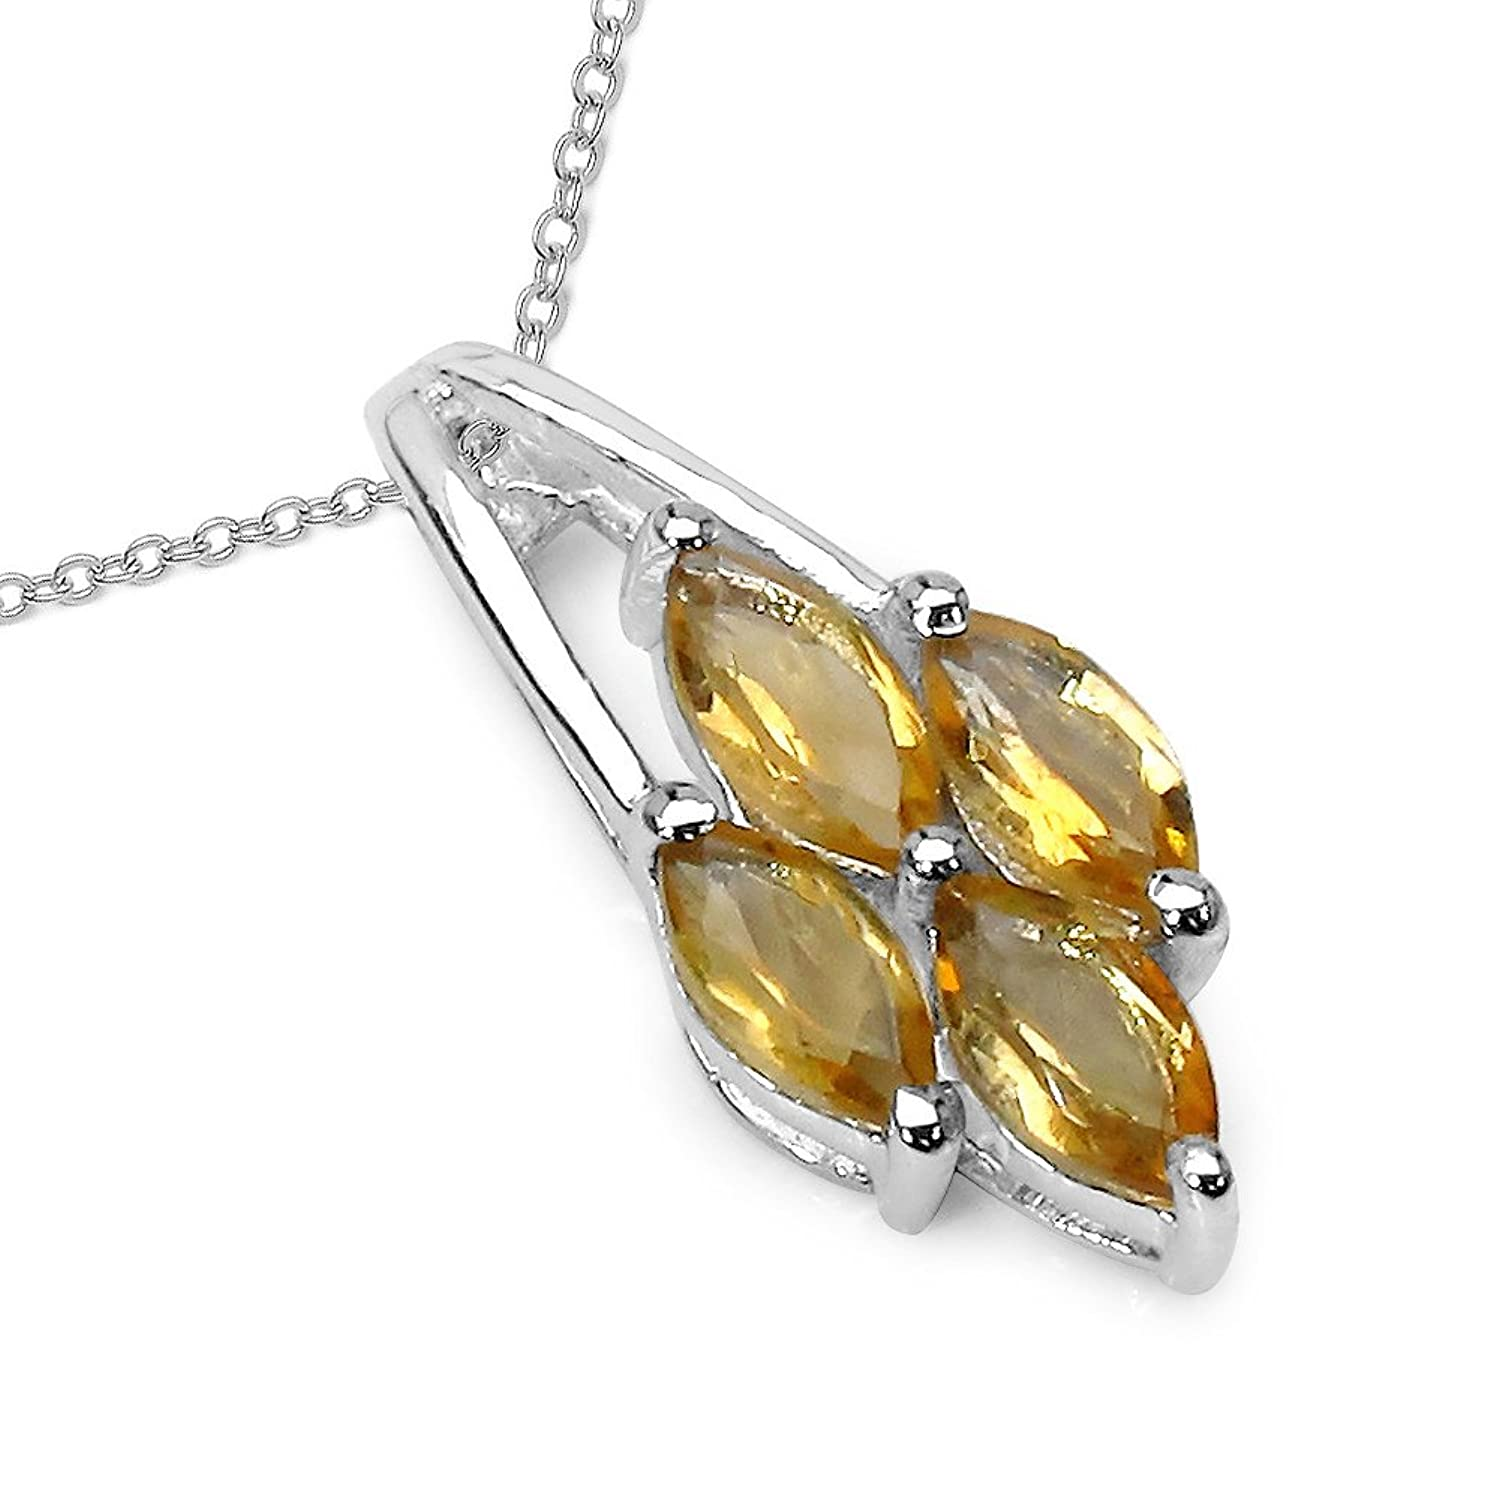 925 sterling silver unusual marquise citrine pendant with